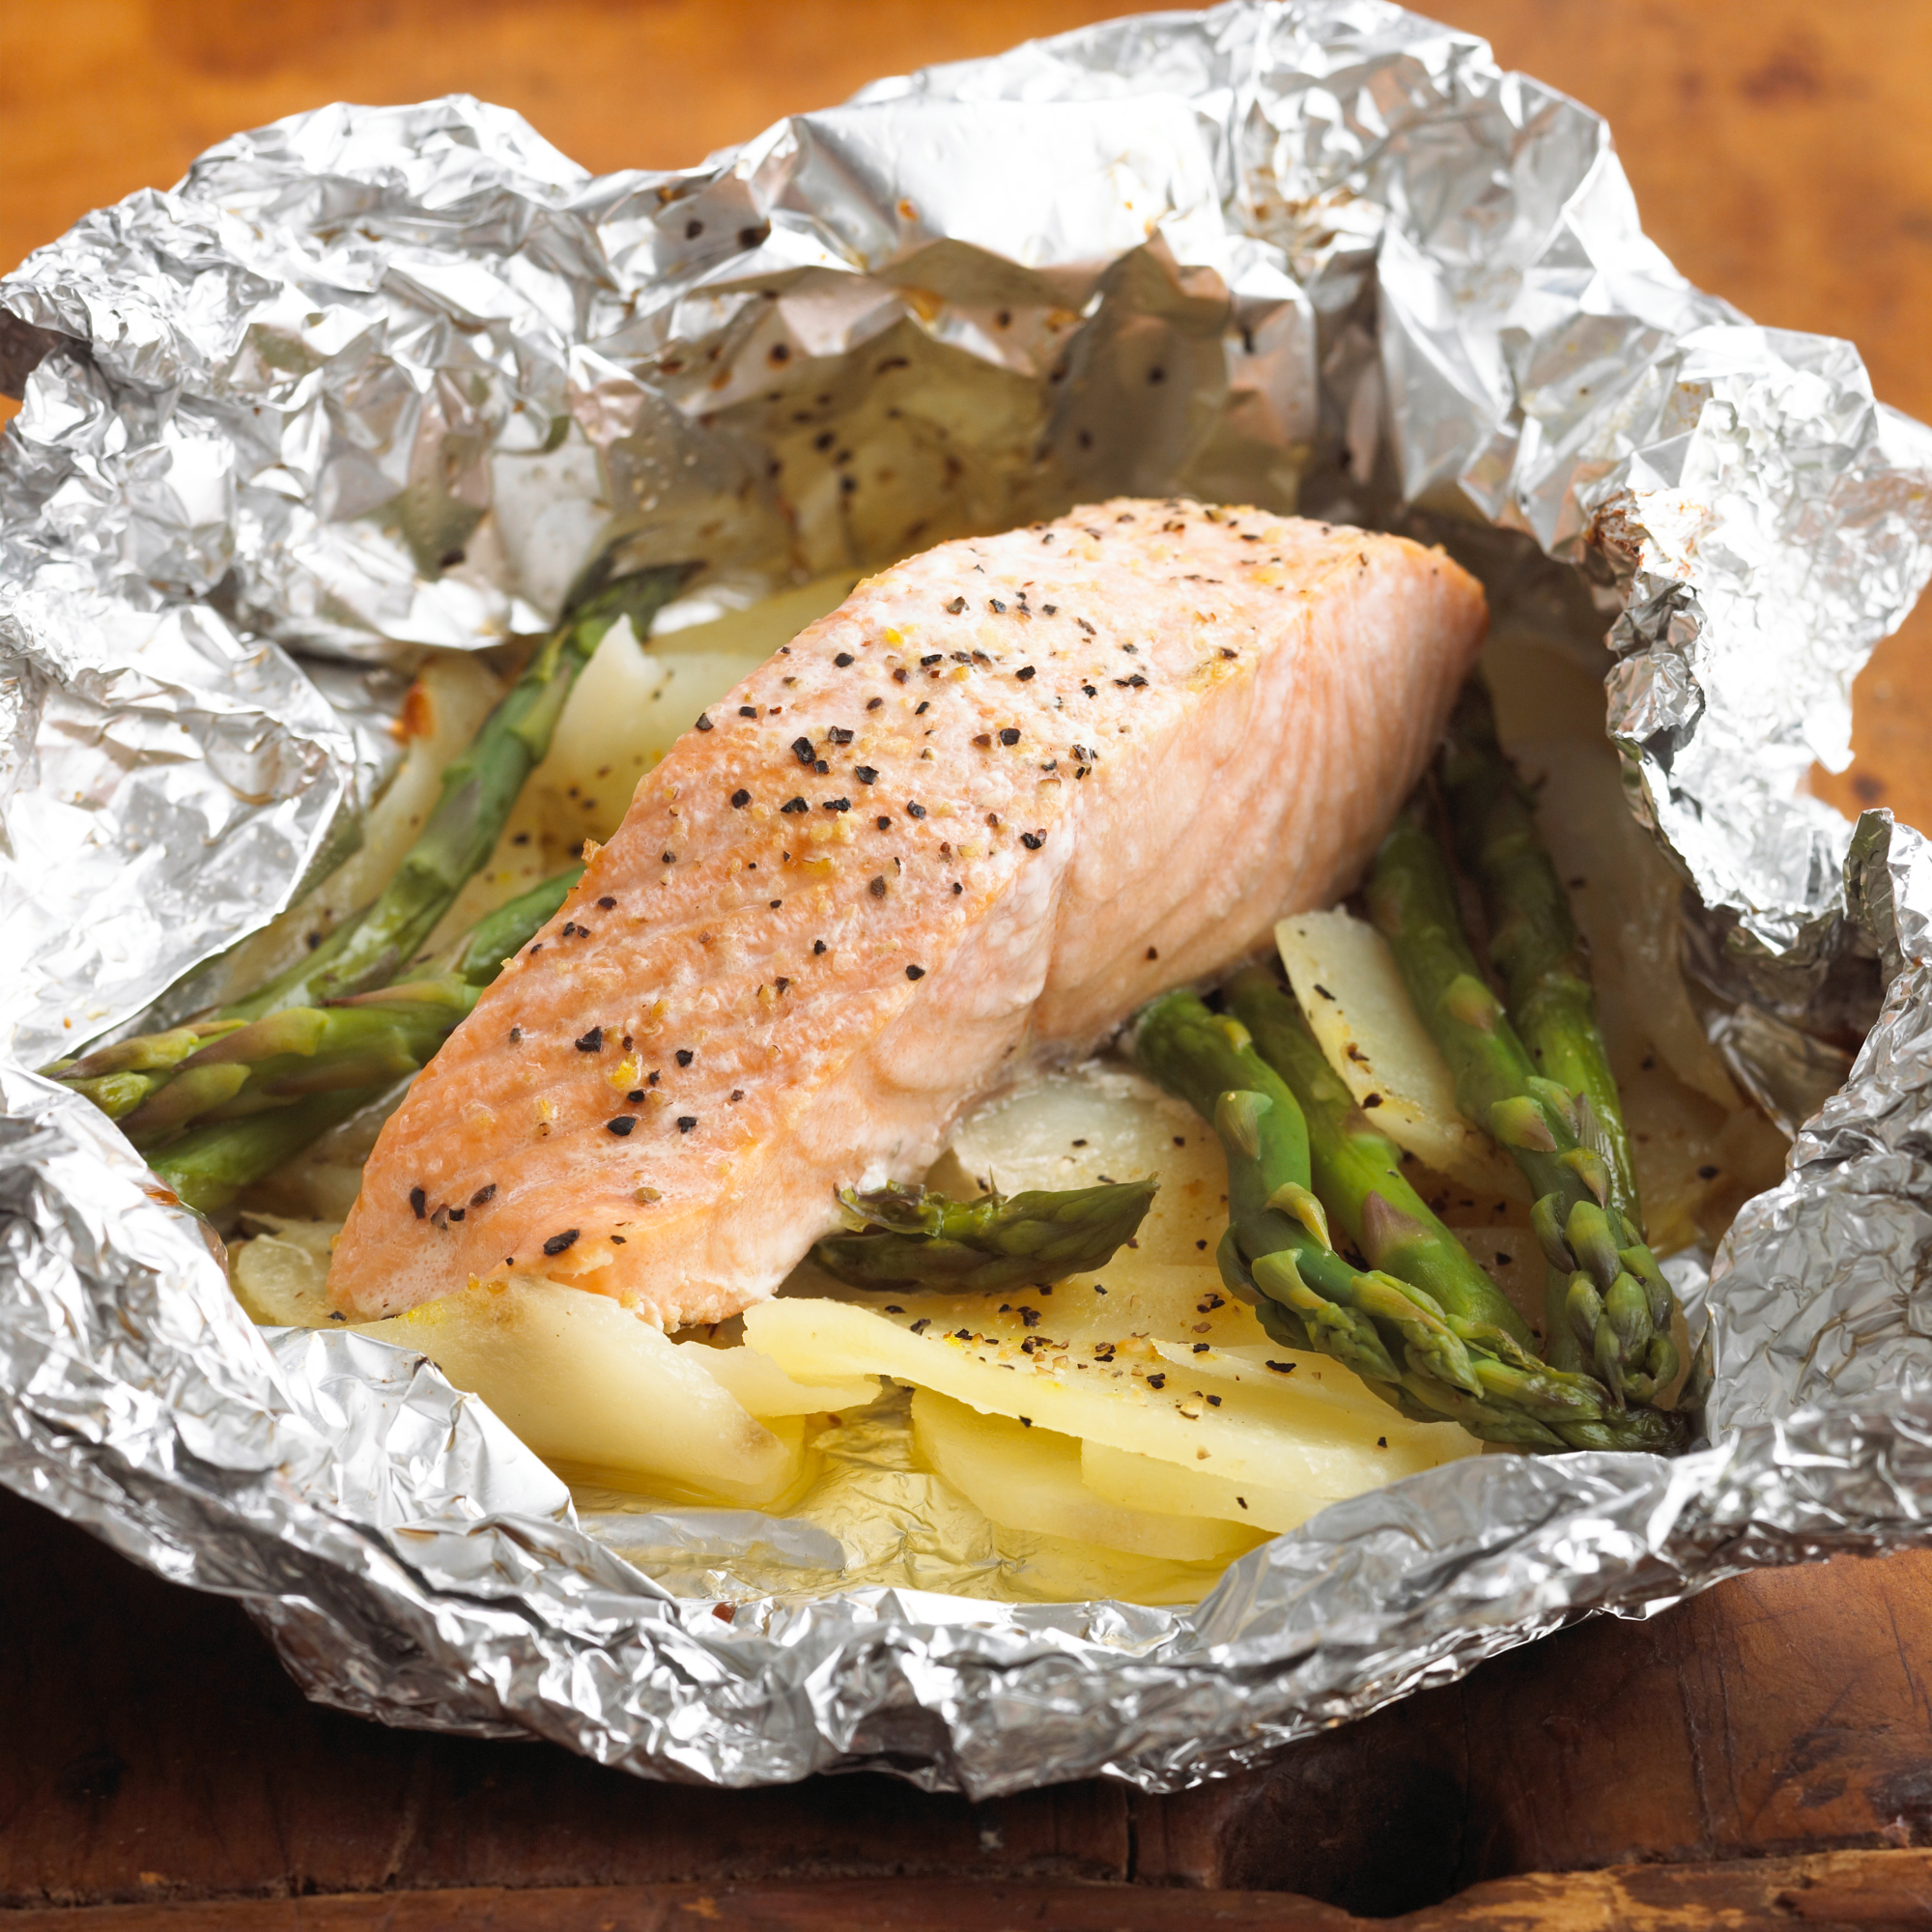 salmon fillet in foil with potatoes and asparagus